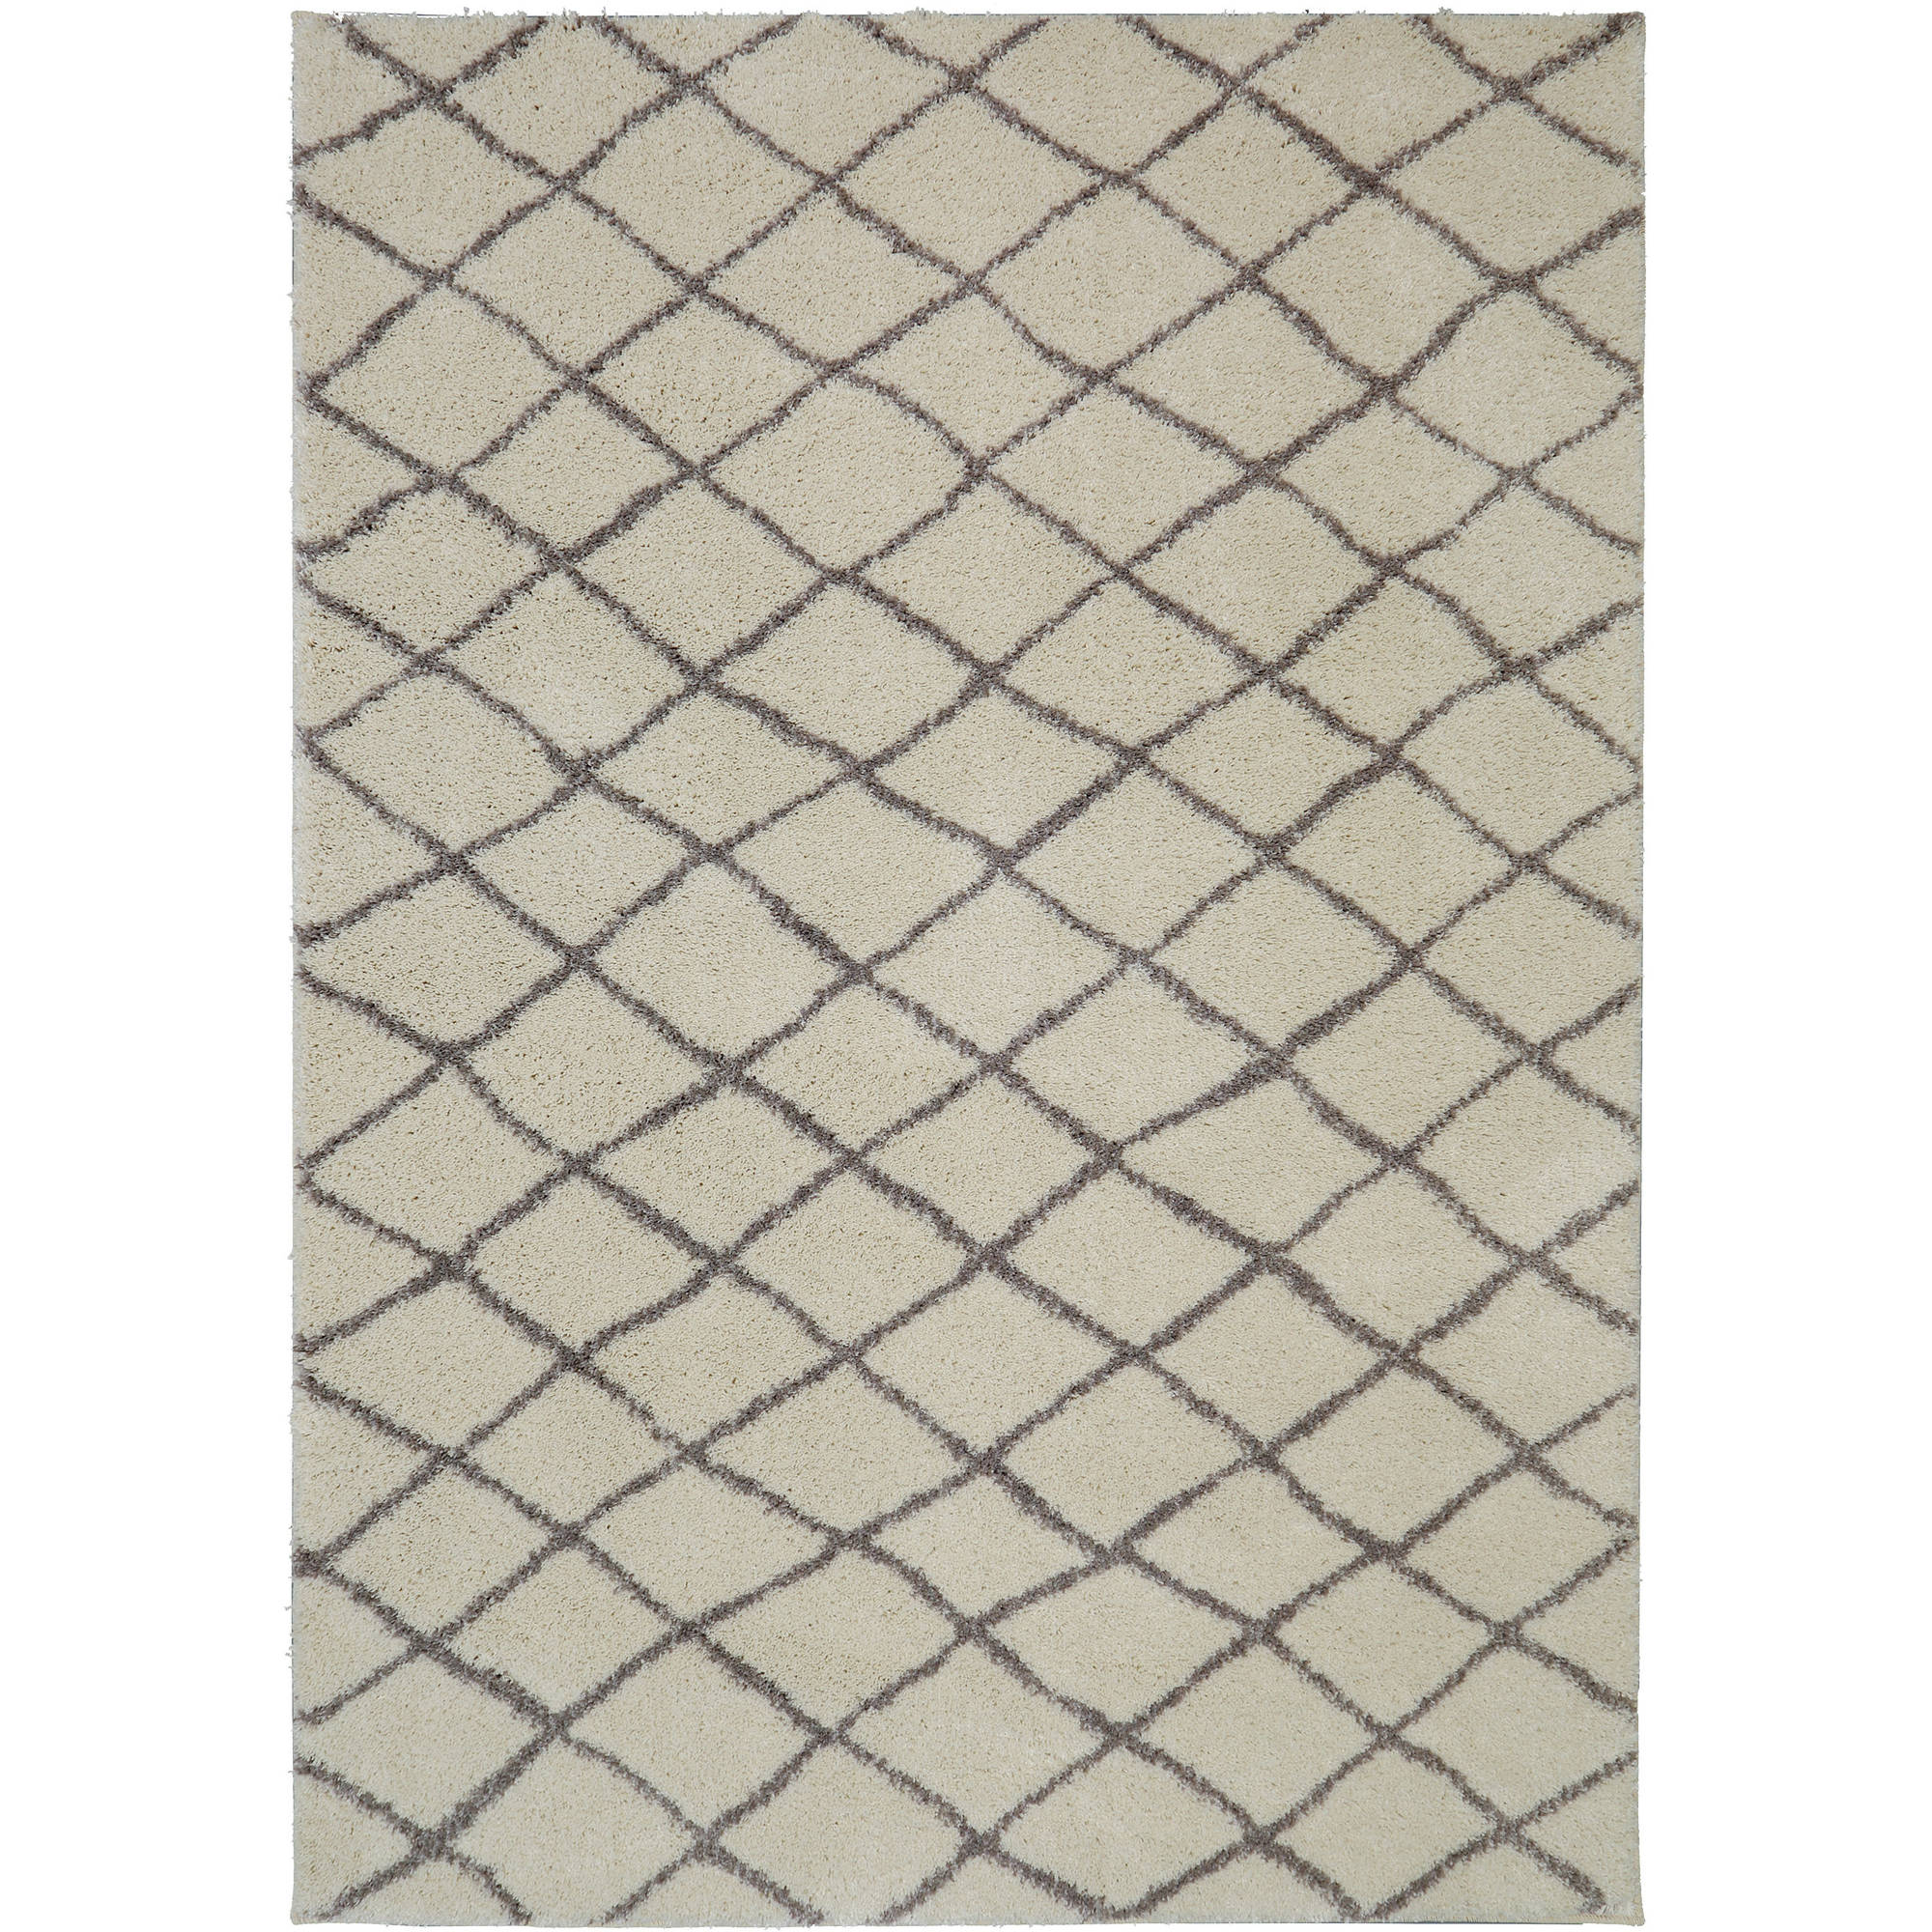 Captivating Mohawk Home Moroccan Area Rug Available In Multiple Sizes And Colors